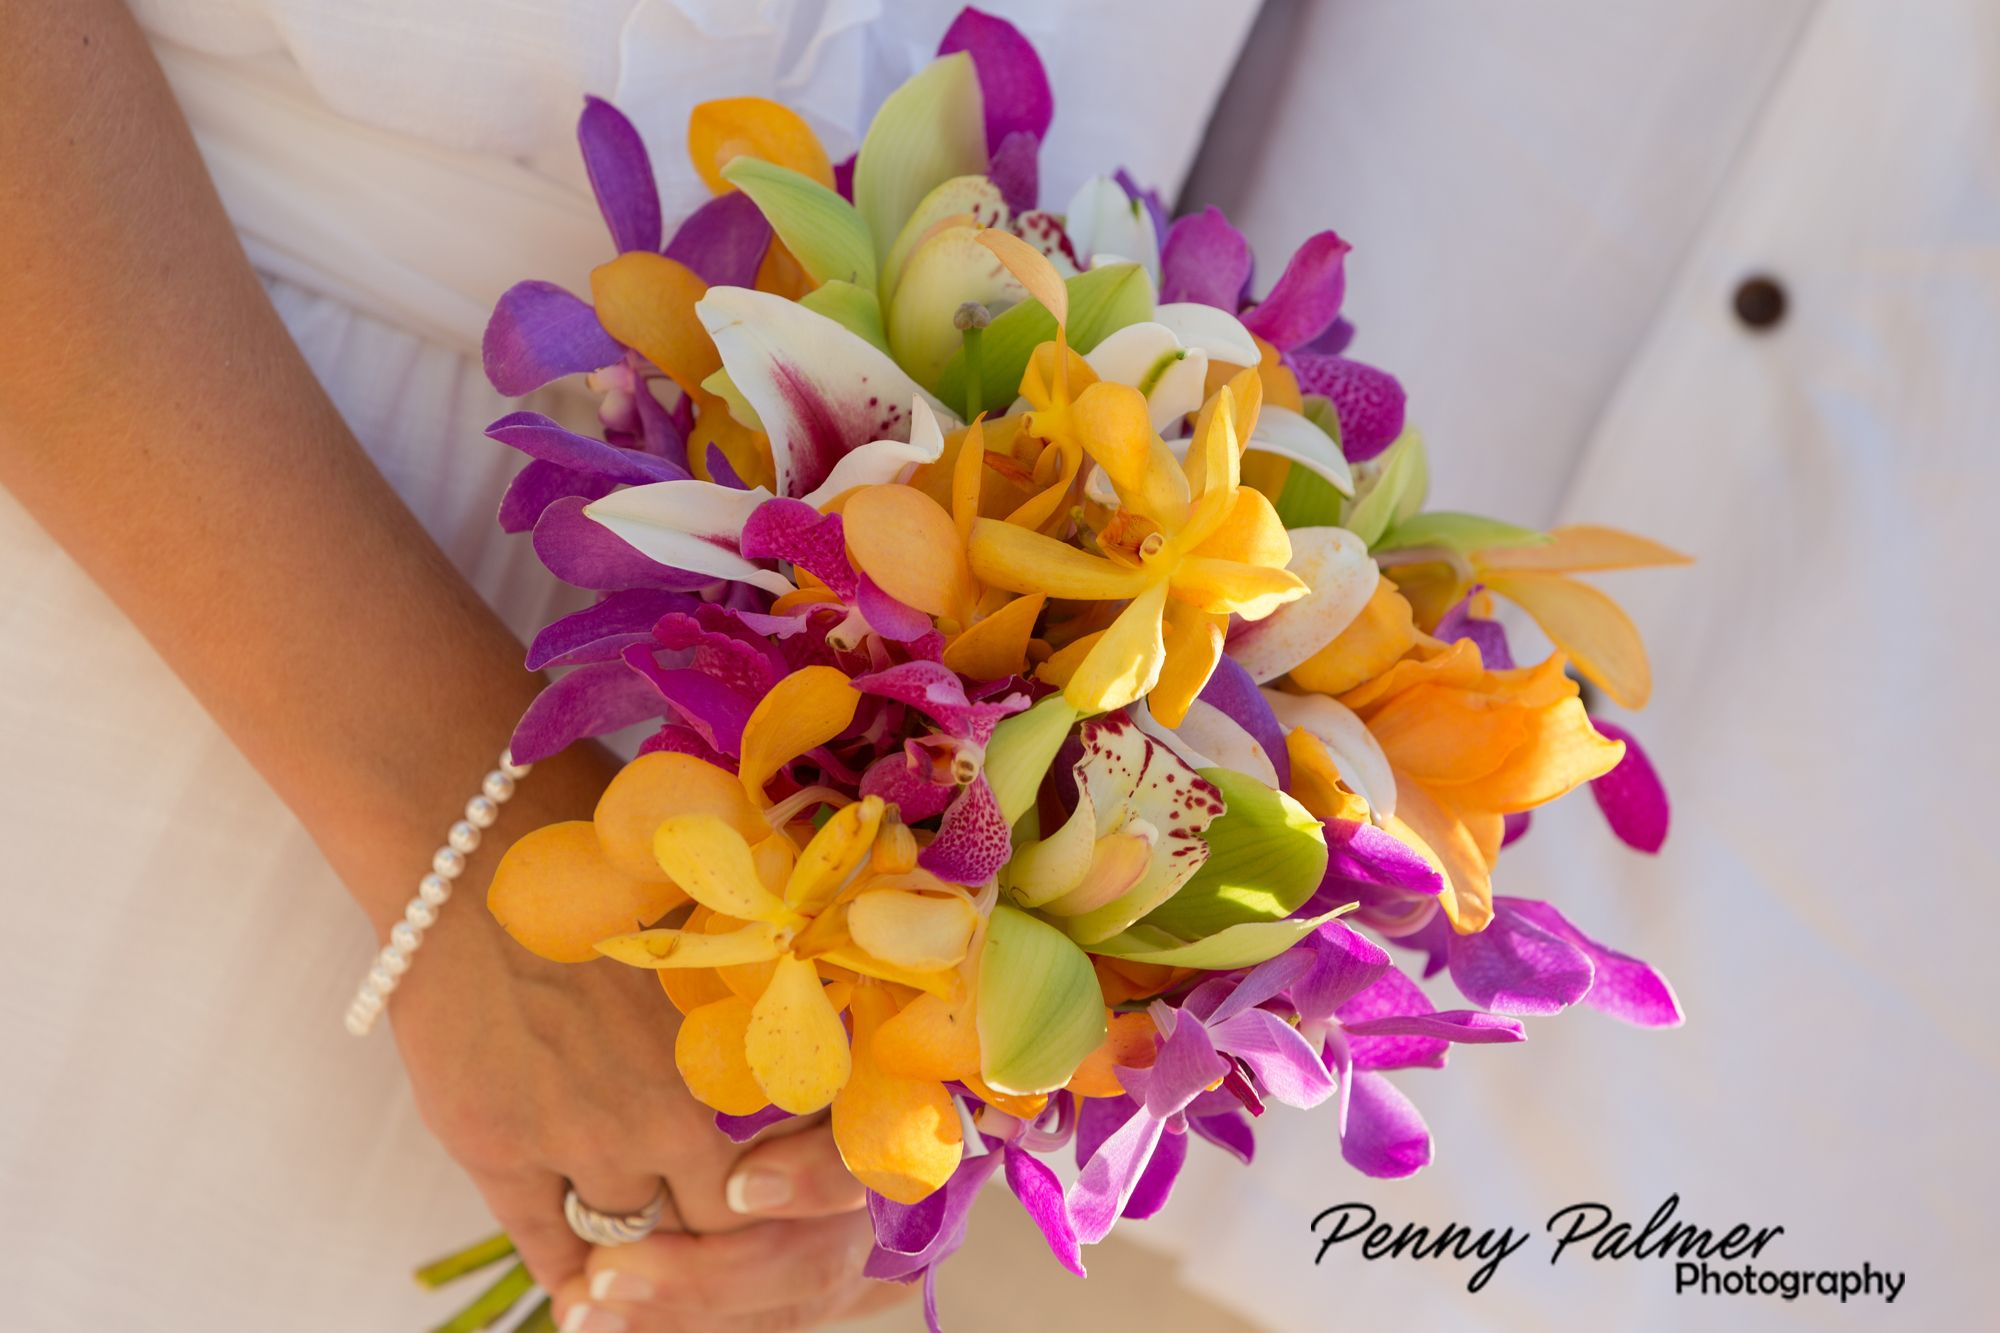 Maui beach weddings bouquet ideas maui wedding flowers pinterest maui beach weddings bouquet ideas izmirmasajfo